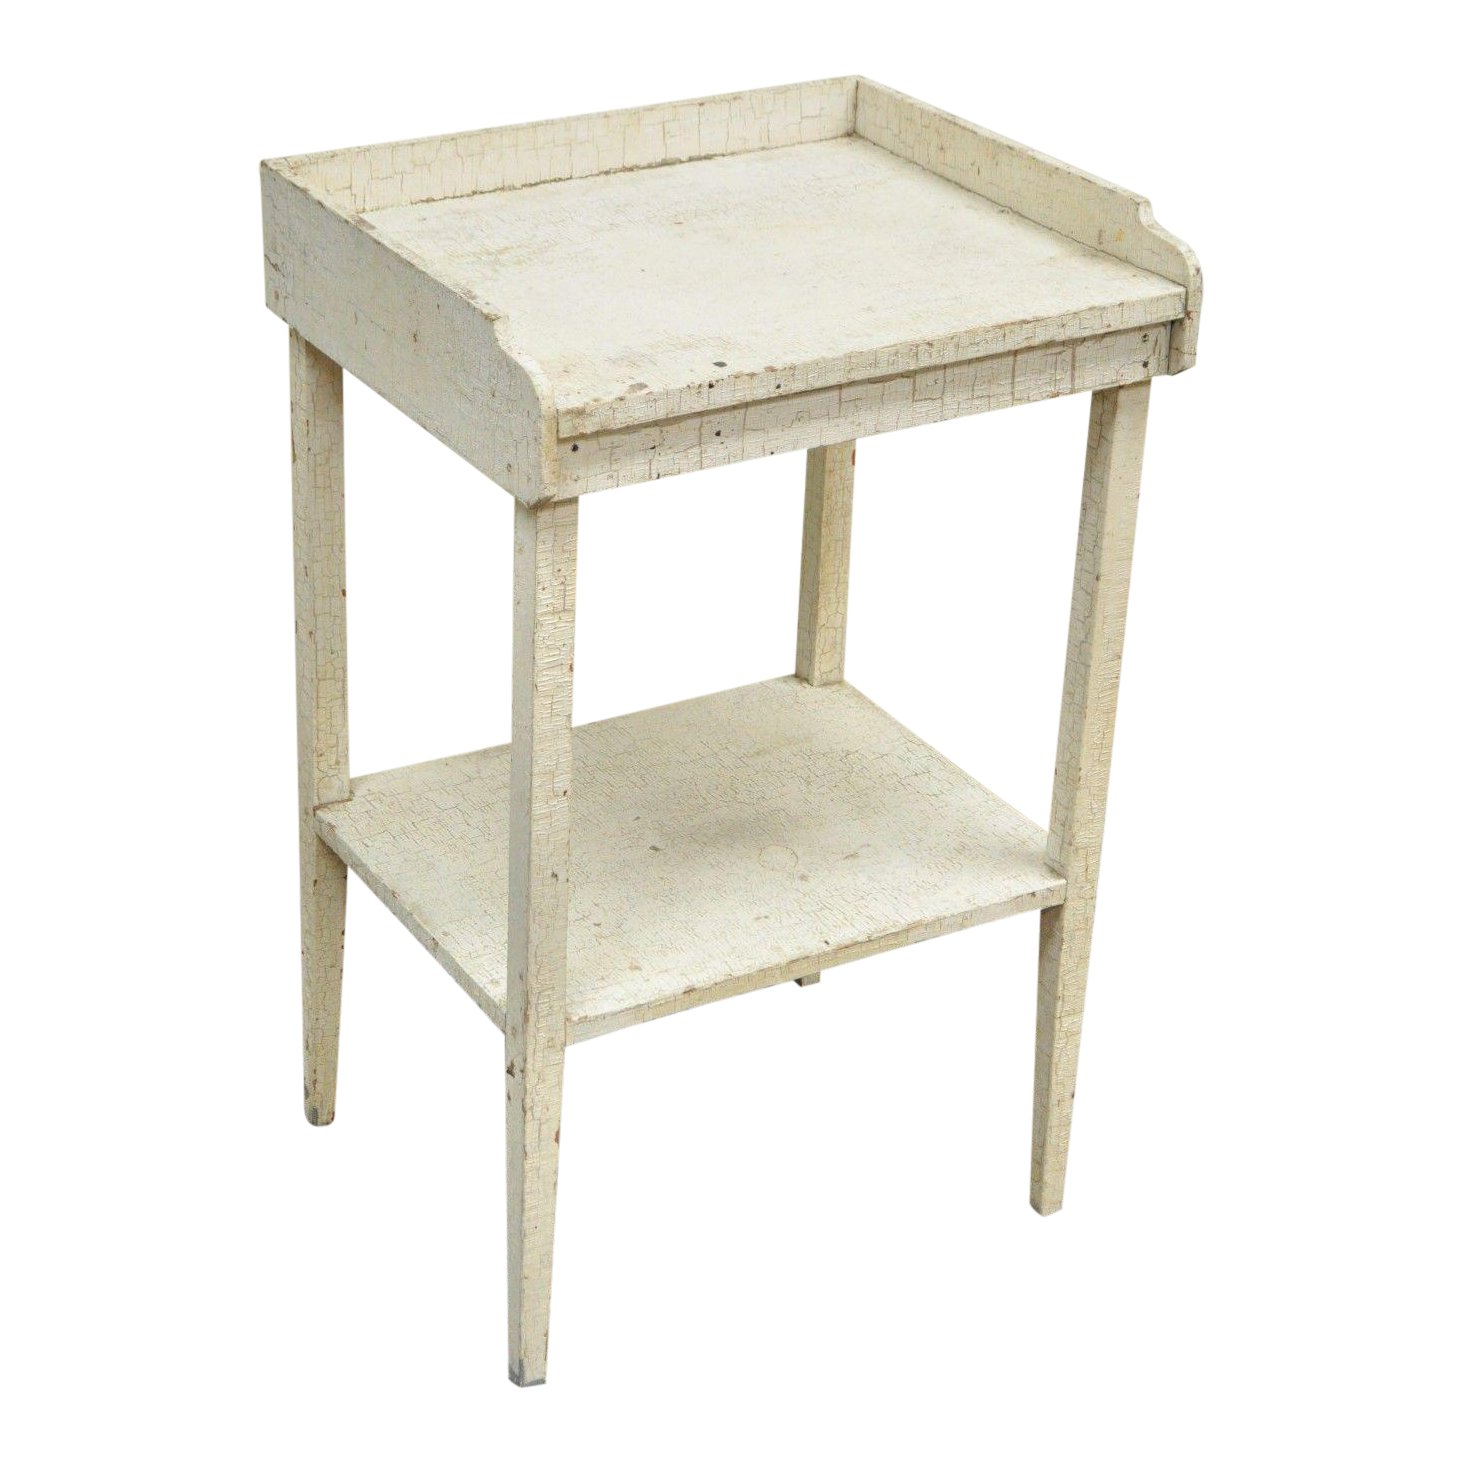 antique white distress painted pine tier accent side table rustic primitive chairish vintage retro furniture gateleg drop leaf building barn door jofran ginger jar lamps green